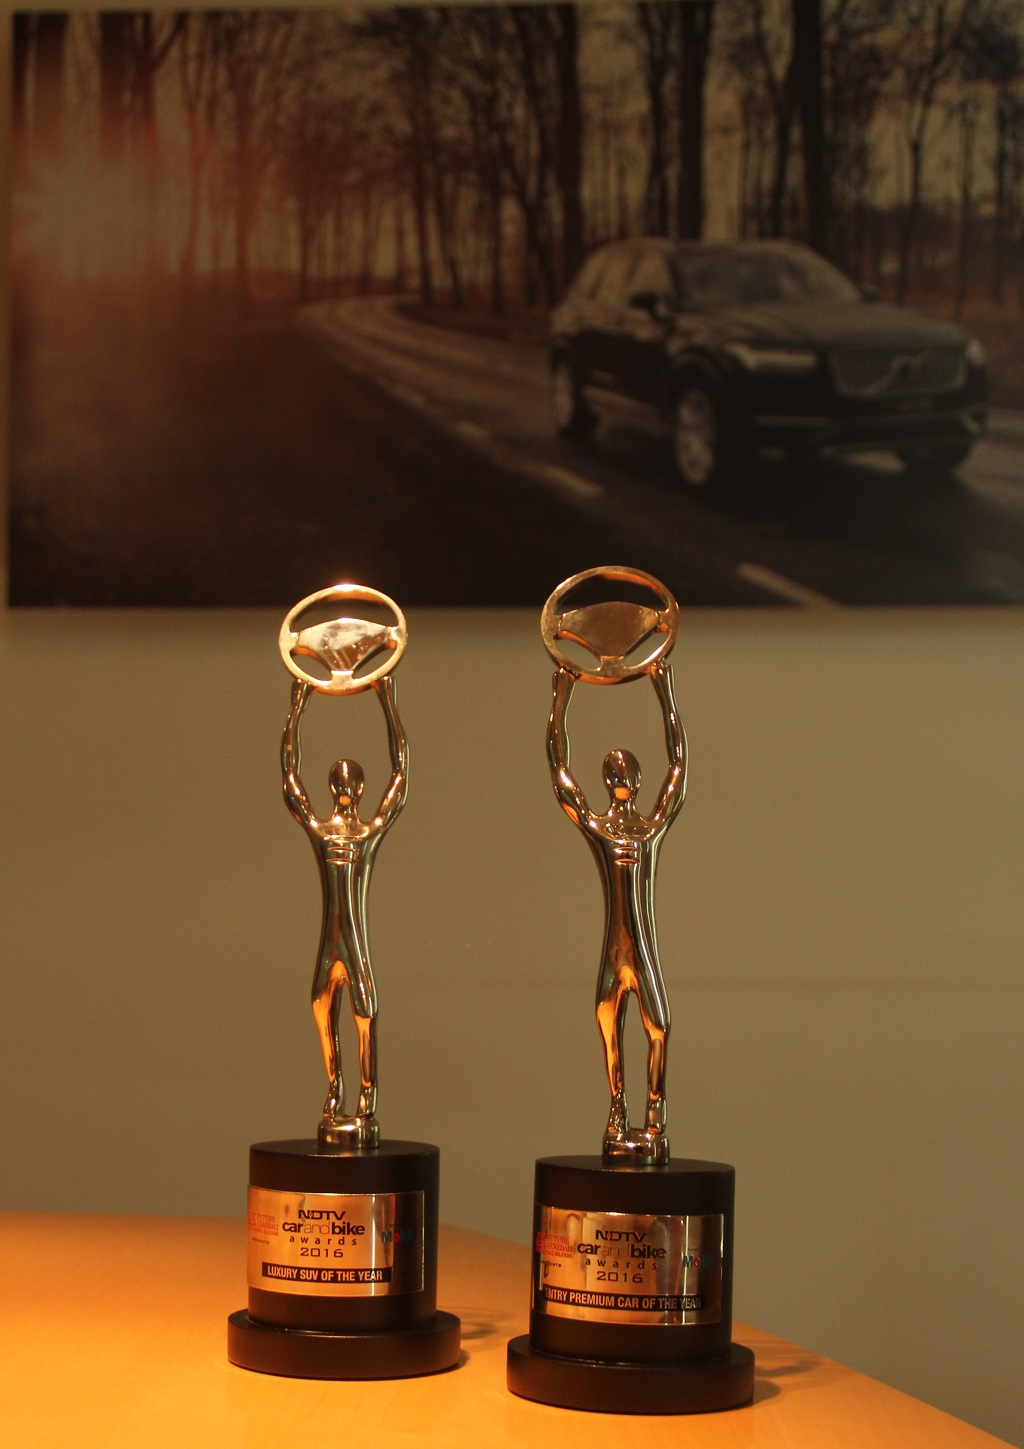 NDTV Car and Bike Awards 2016 honours Volvo Cars with two Awards